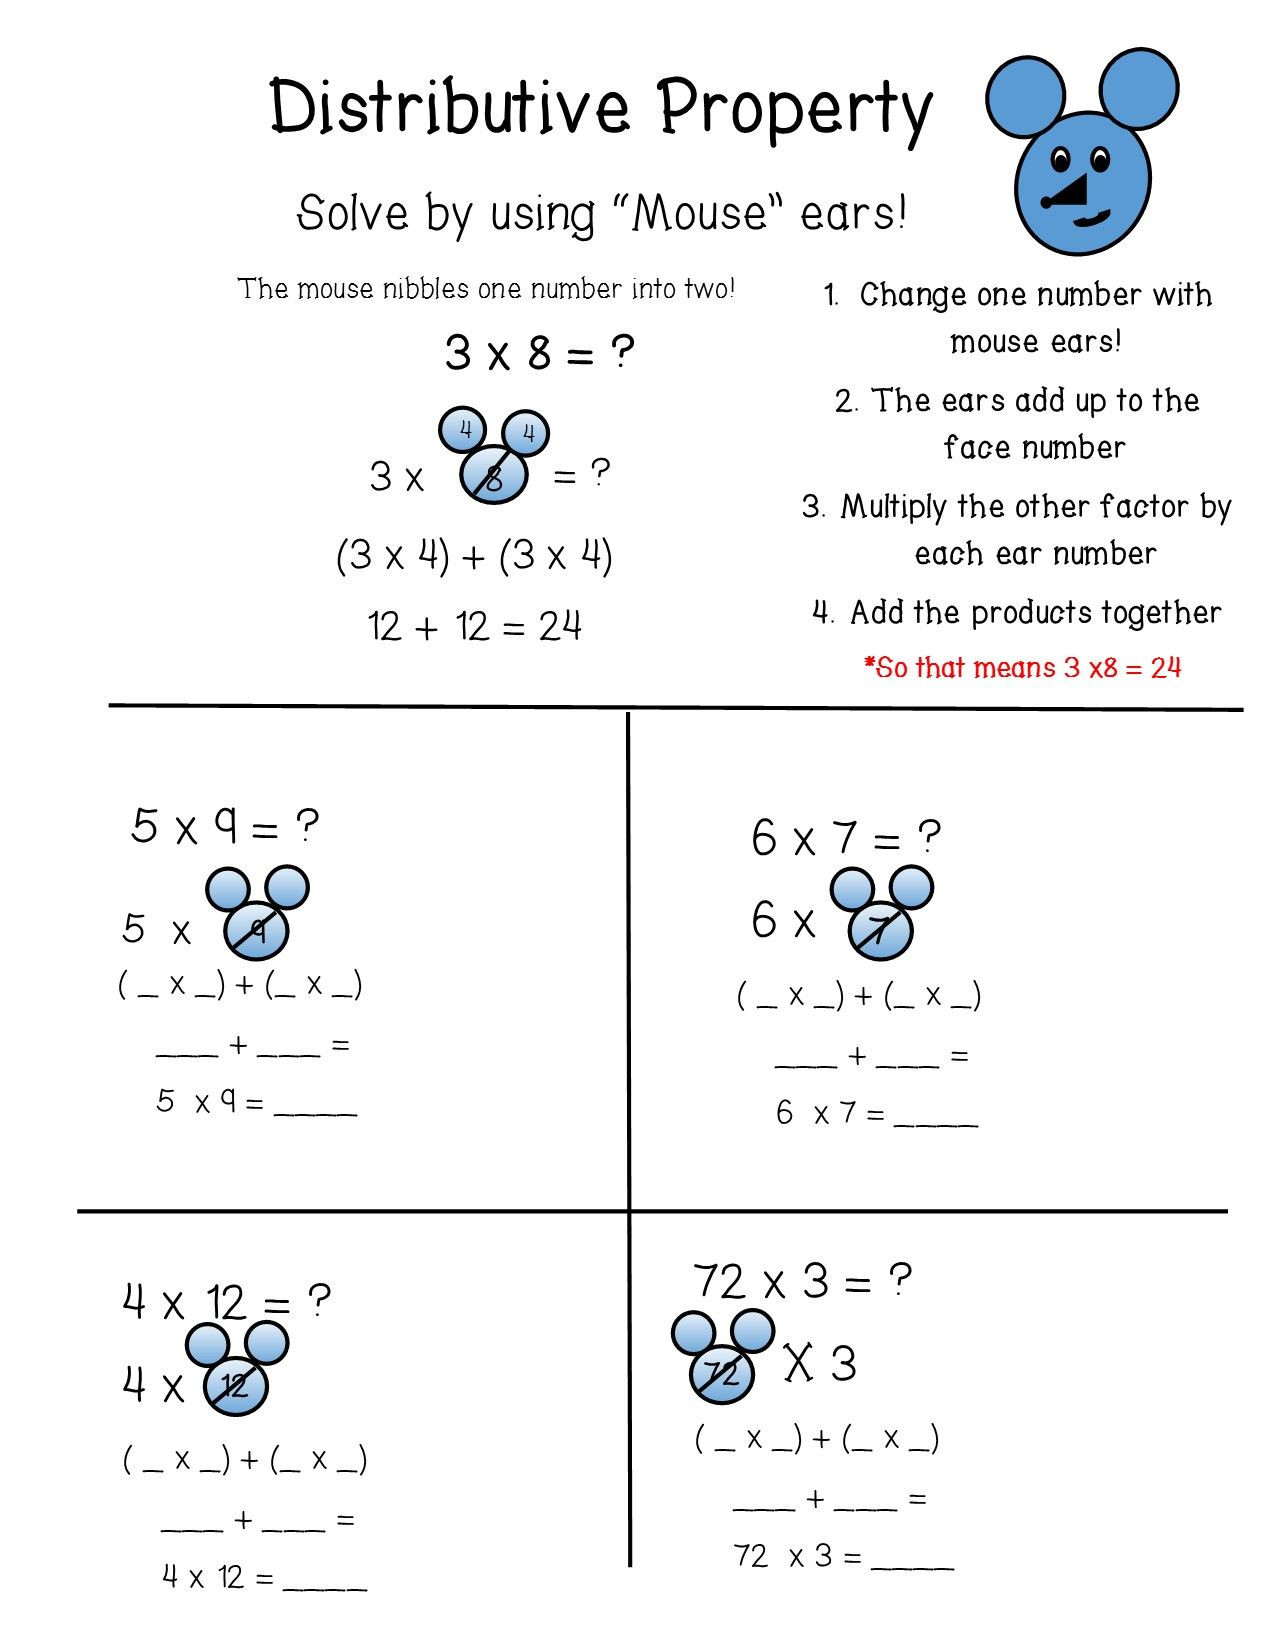 3rd Grade Distributive Property Worksheets the Distributive Property Of Multiplication is Broken Down